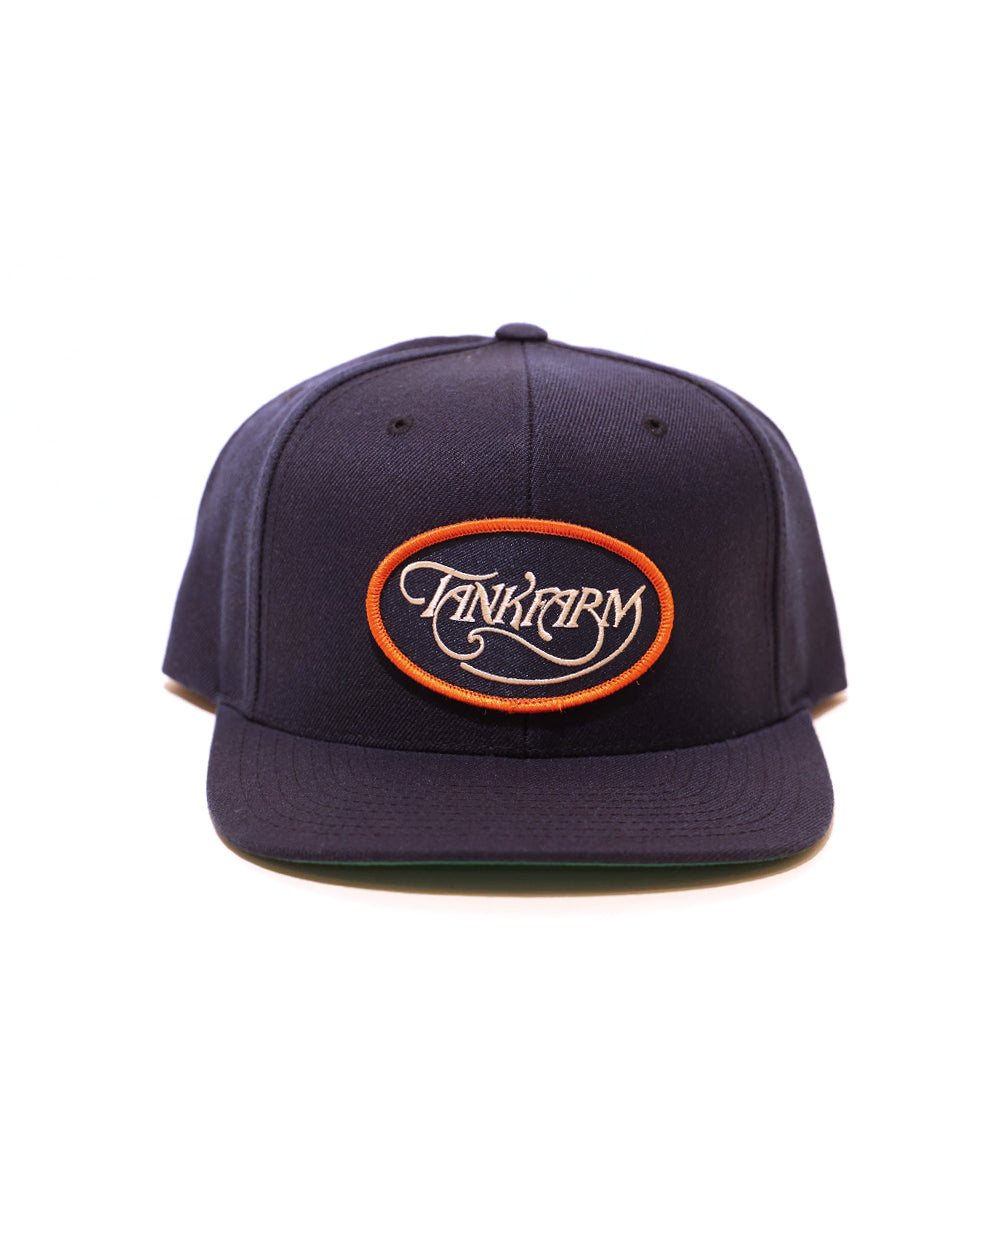 SB WAVE PATCH HAT - NAVY - Tankfarm & Co.